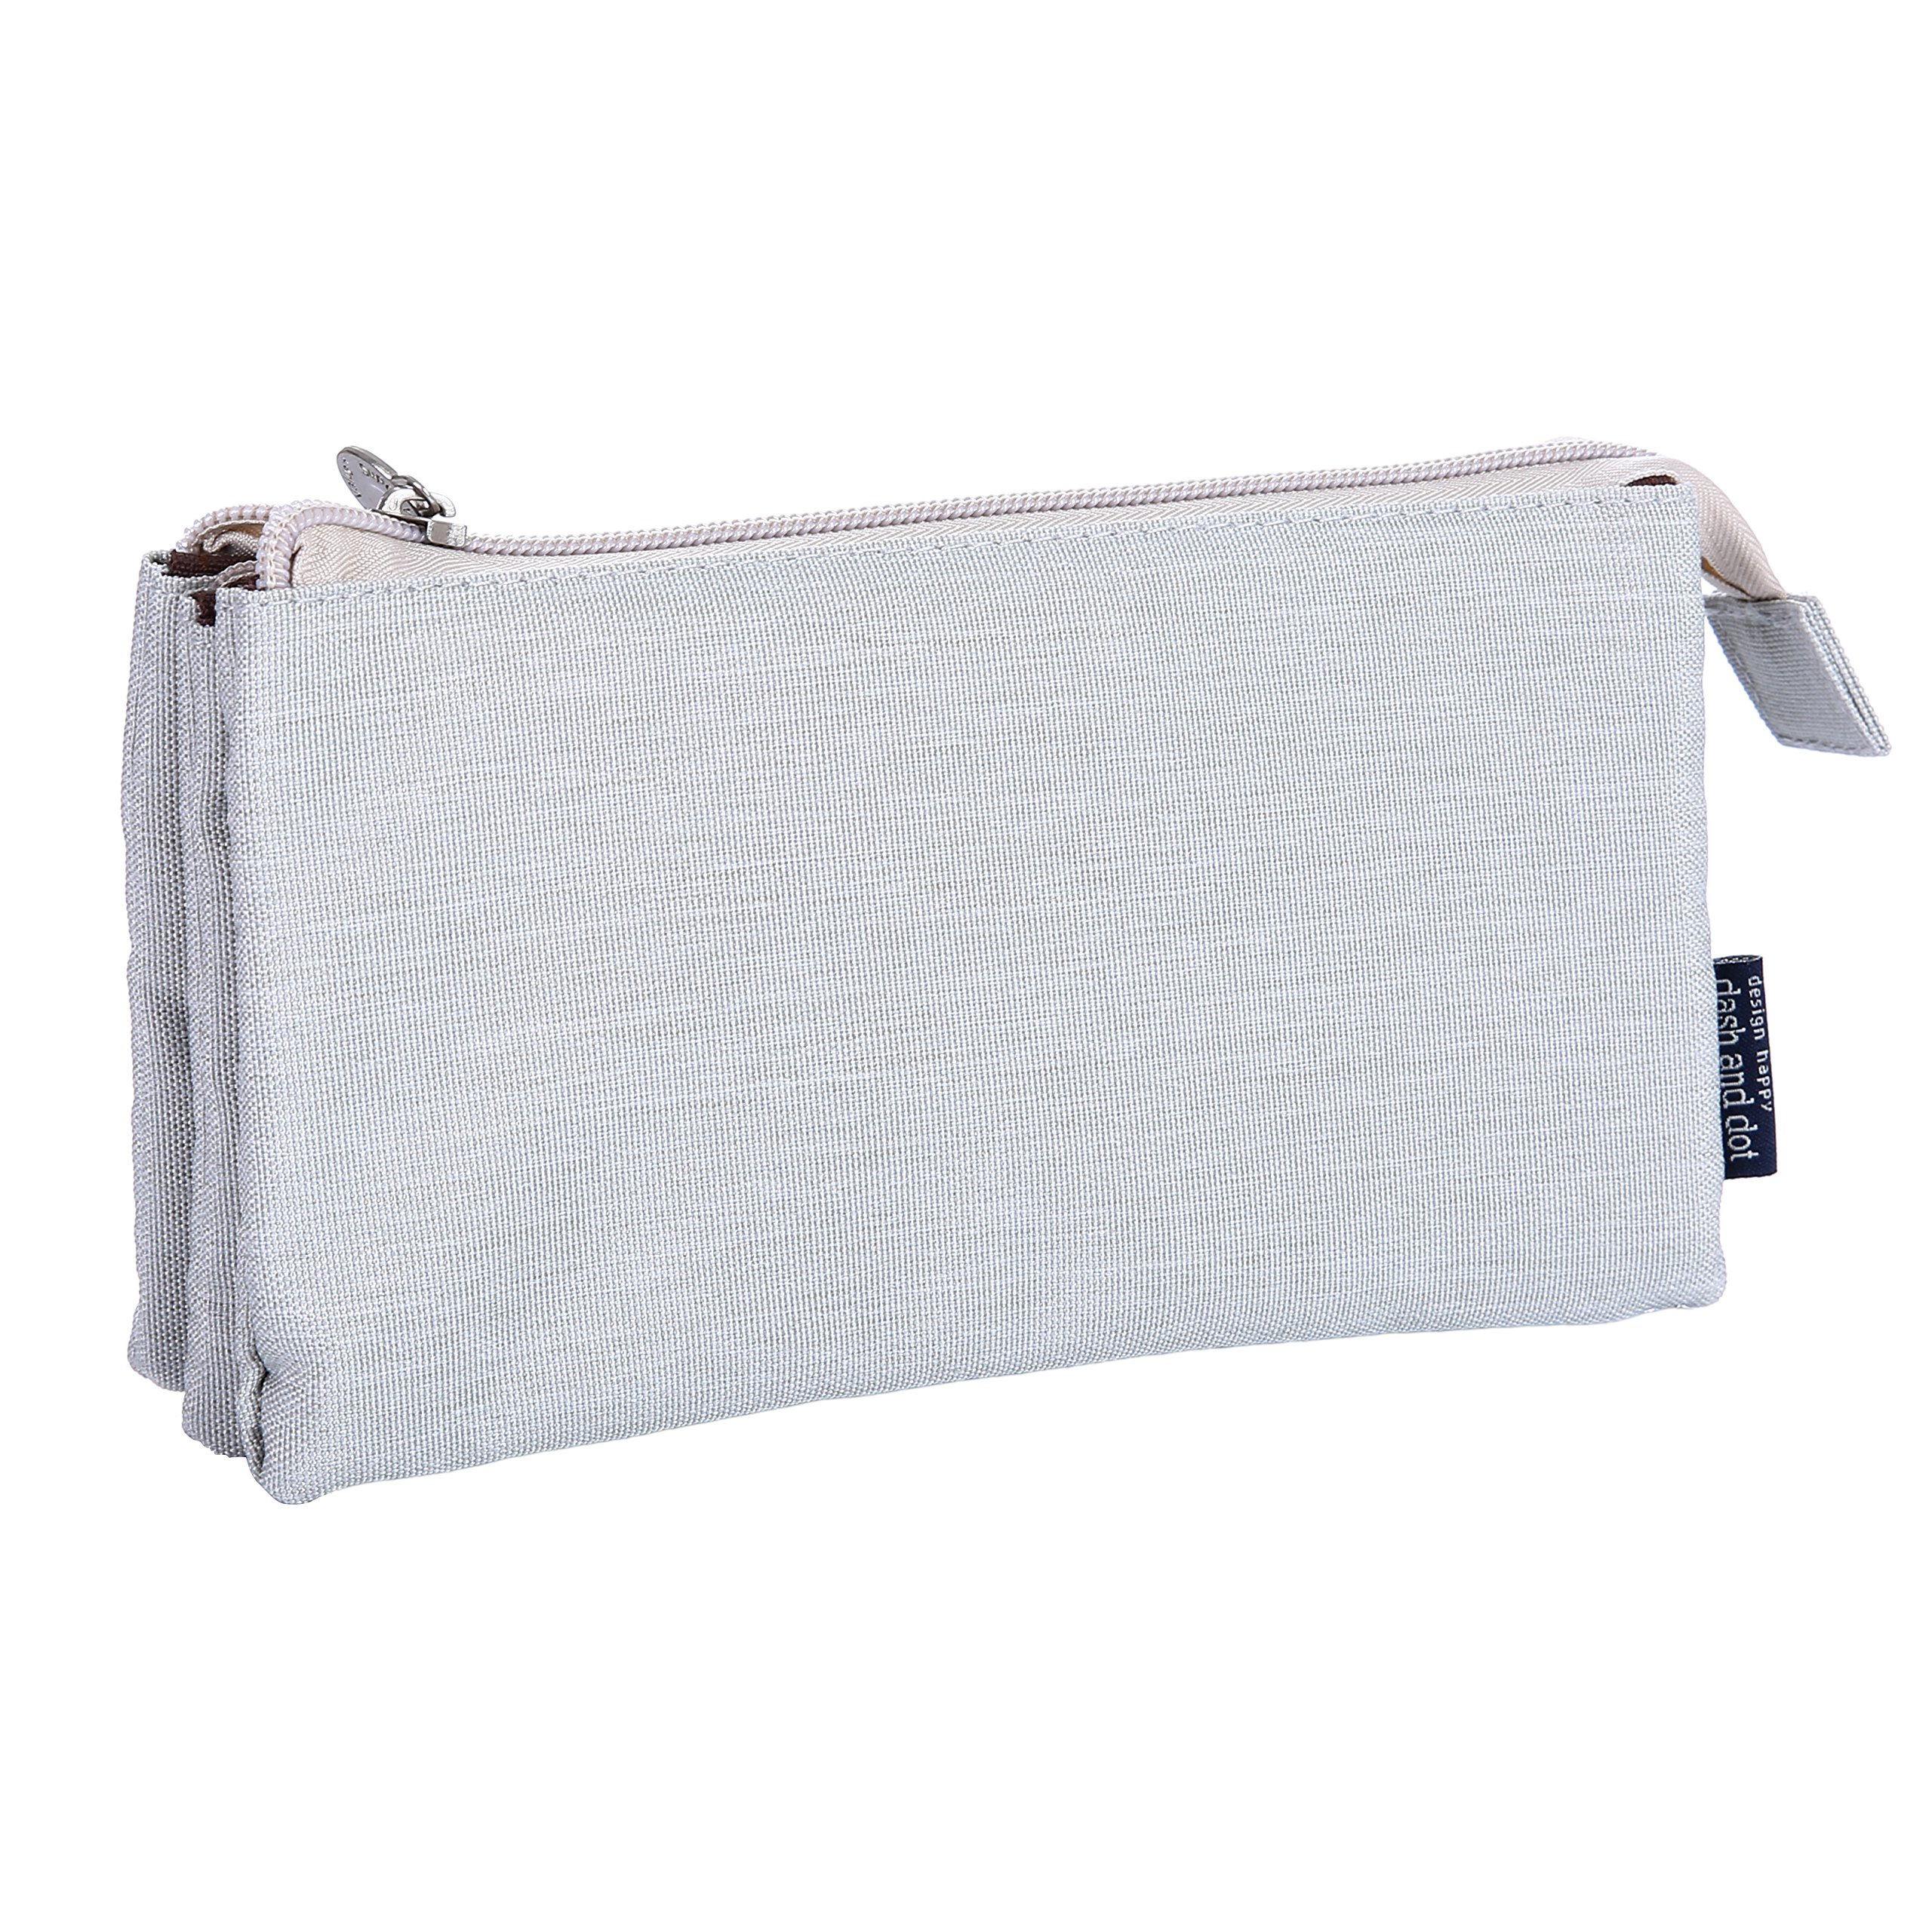 O,Like Super Capacity Pencil Case Three Compartment Pencil Holer Pencil Pouch Pen Bag Cosmetic Bag (grey)